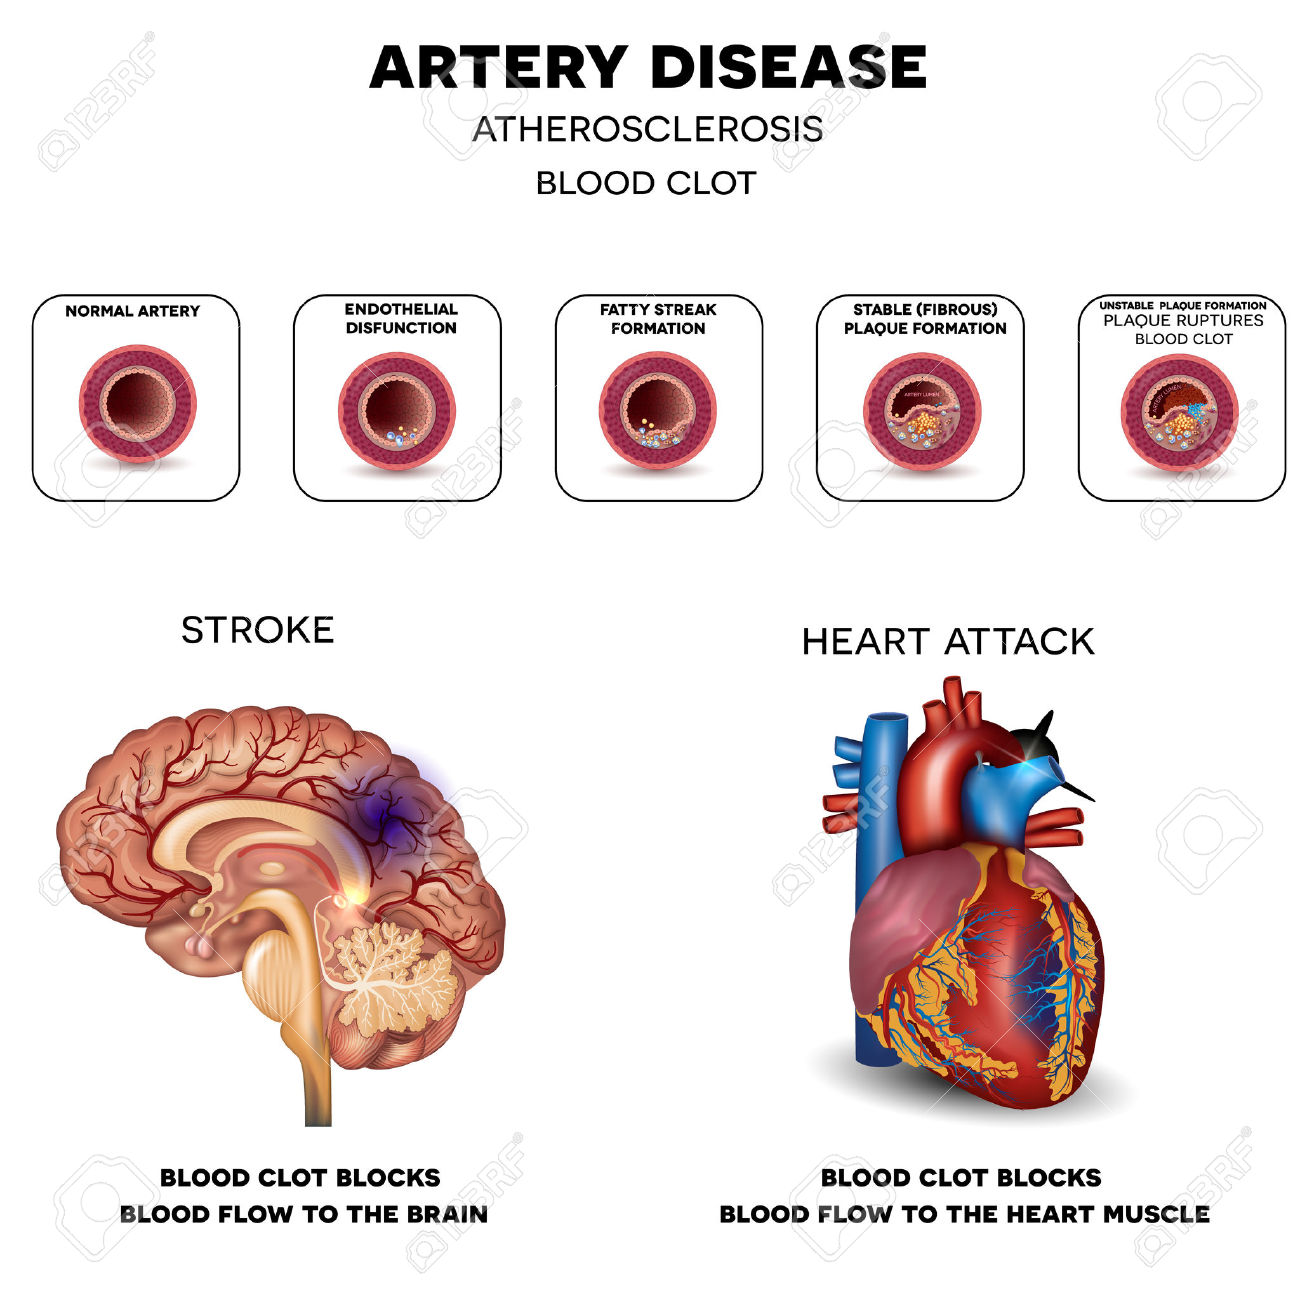 What can I do to prevent or delay heart disease and stroke?